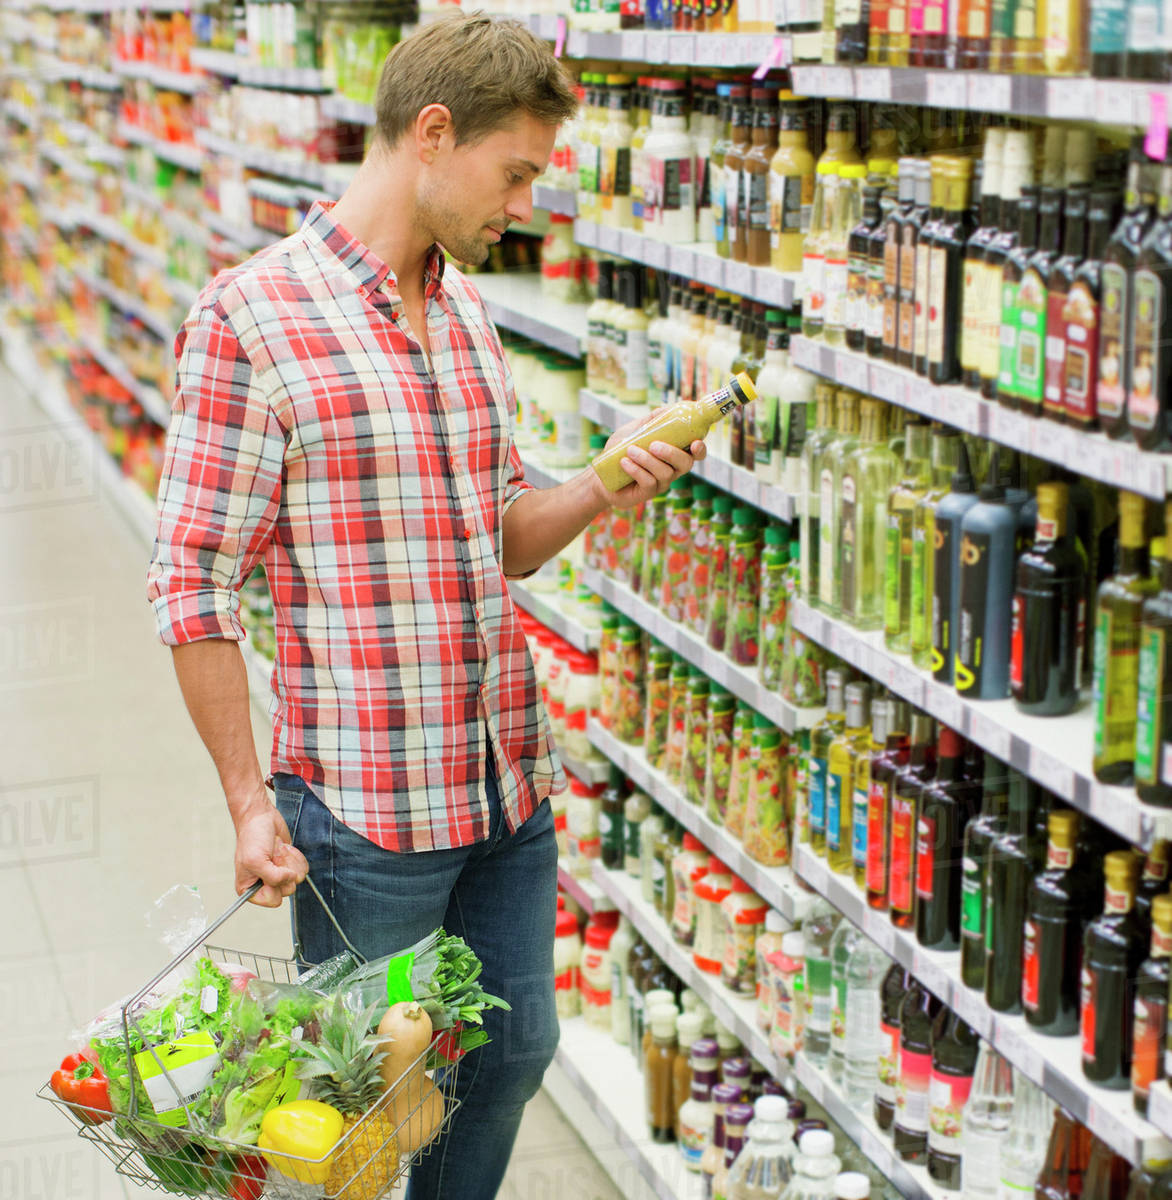 man shopping in grocery